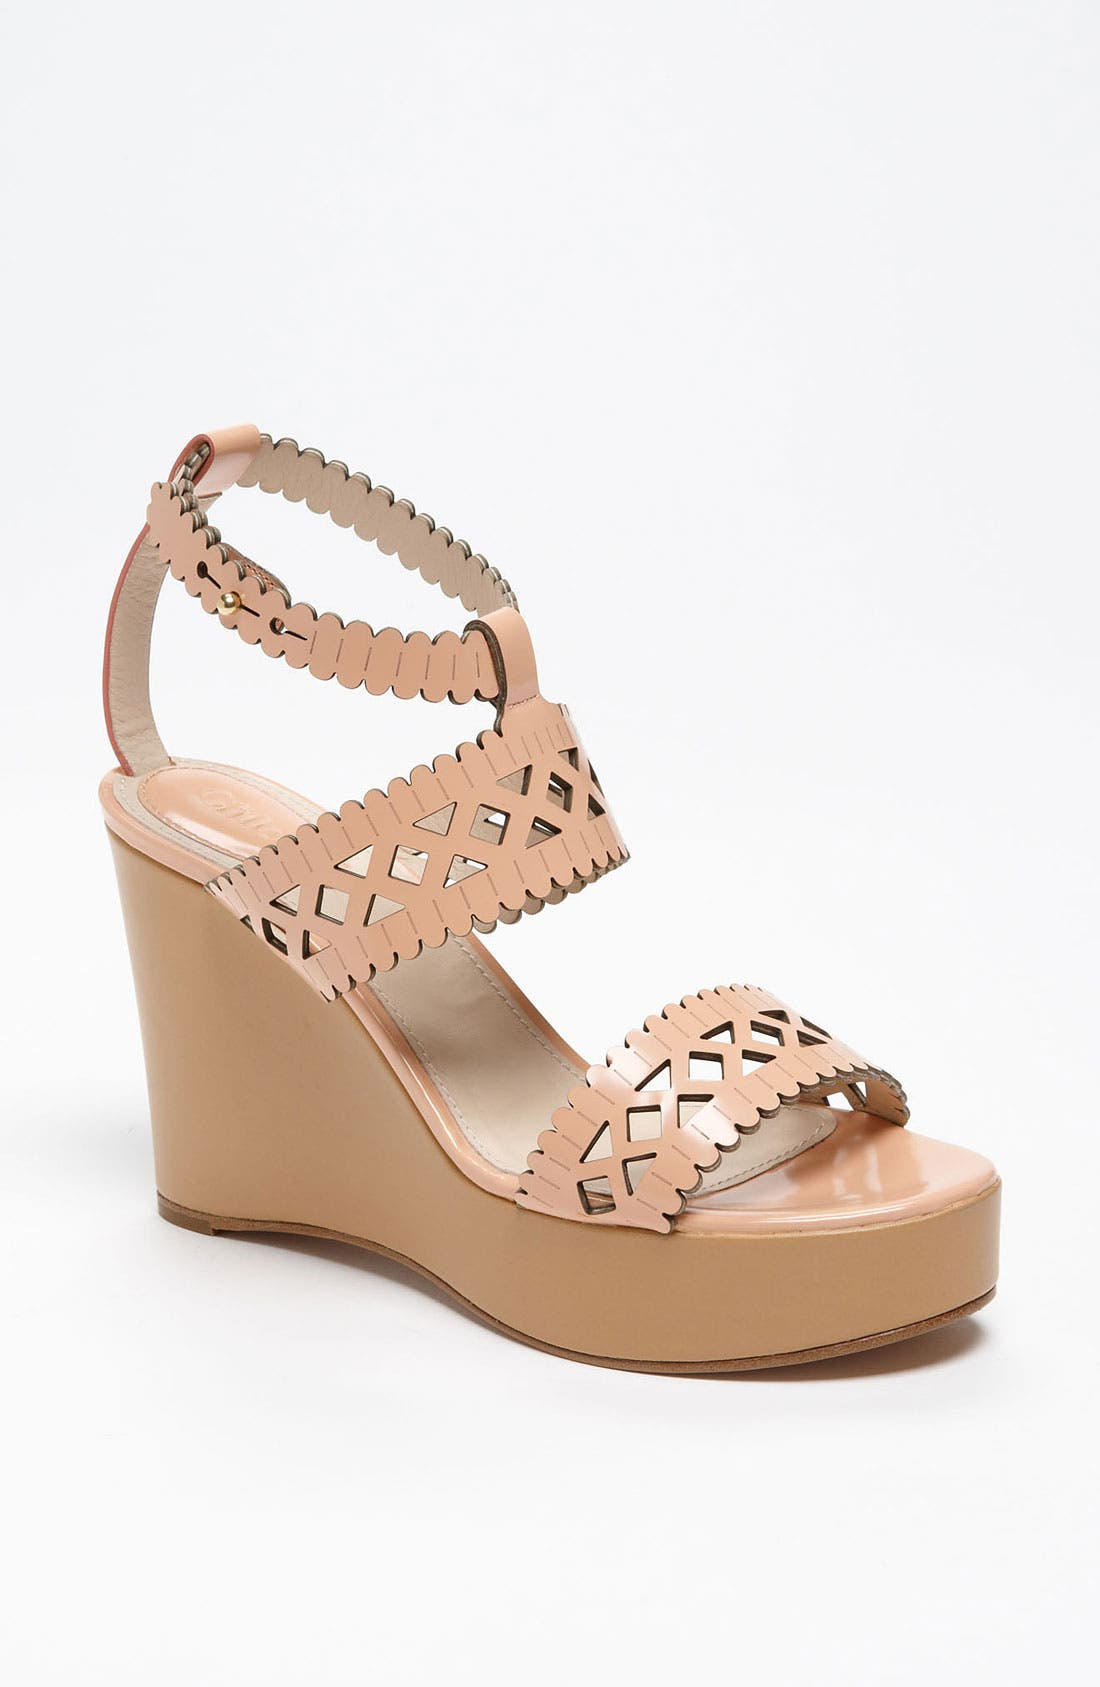 Alternate Image 1 Selected - Chloé Laser Cut Wedge Sandal